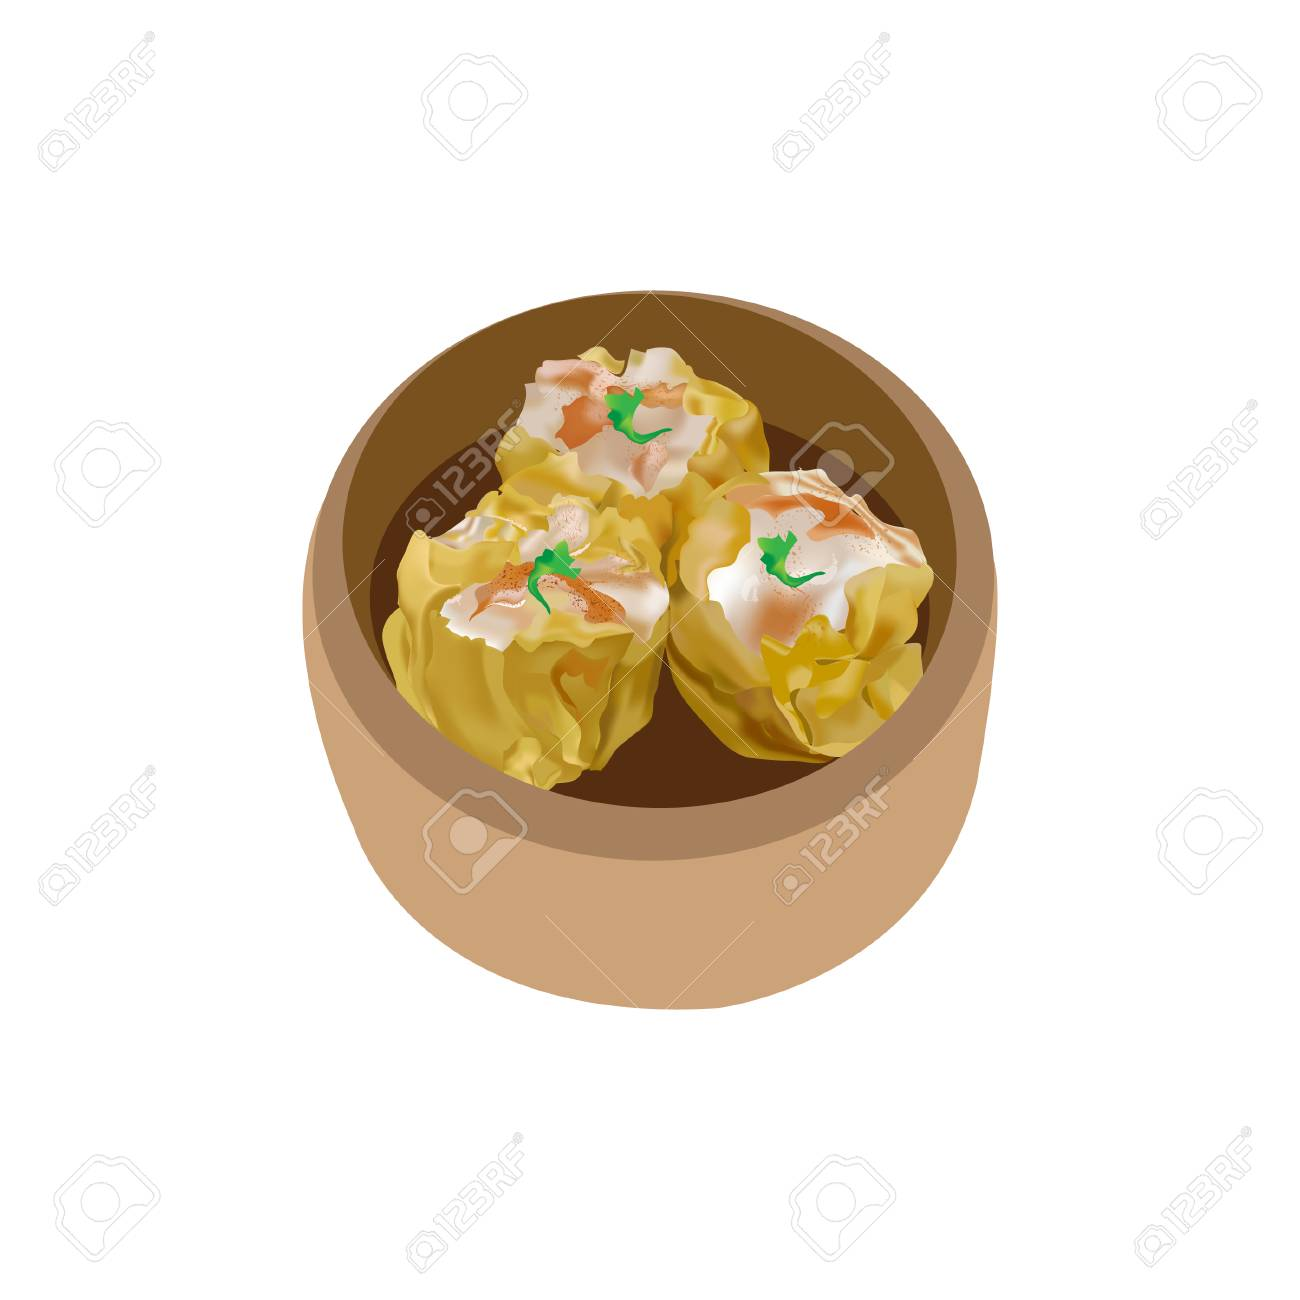 pork shumai dumplings dim sum royalty free cliparts vectors and stock illustration image 109627873 pork shumai dumplings dim sum